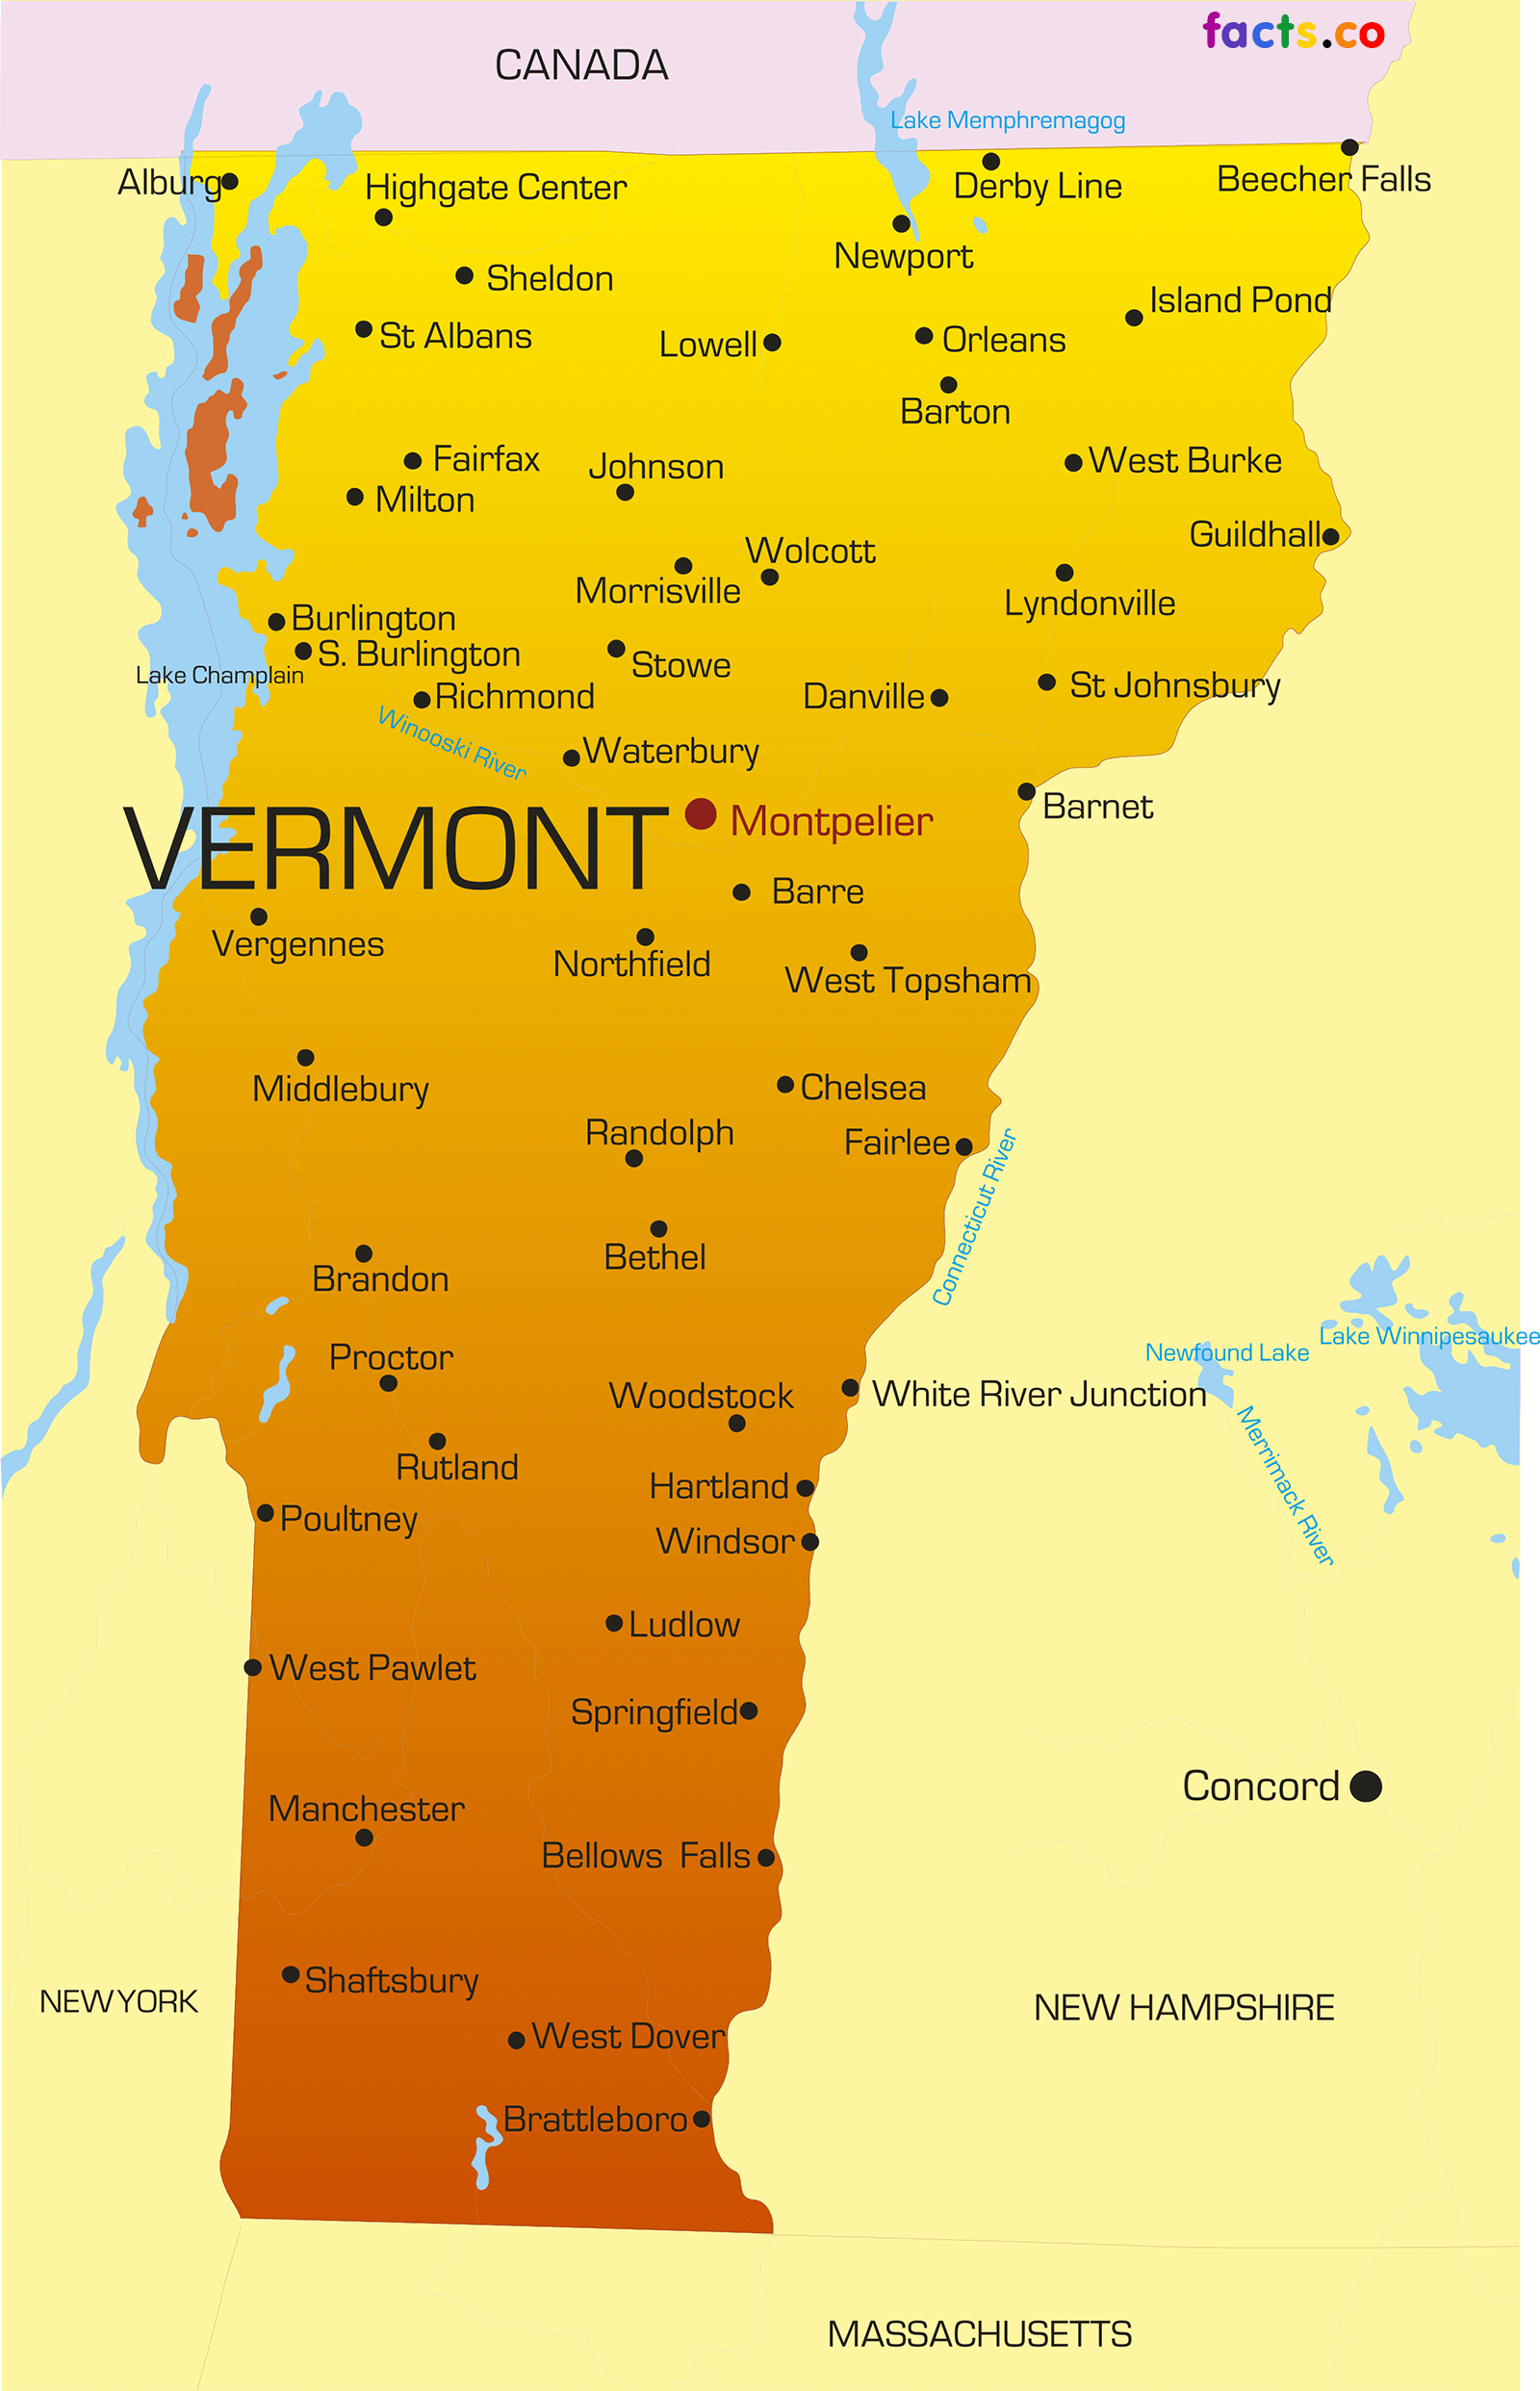 Vermont Map Fotolipcom Rich Image And Wallpaper - Vermont colleges map